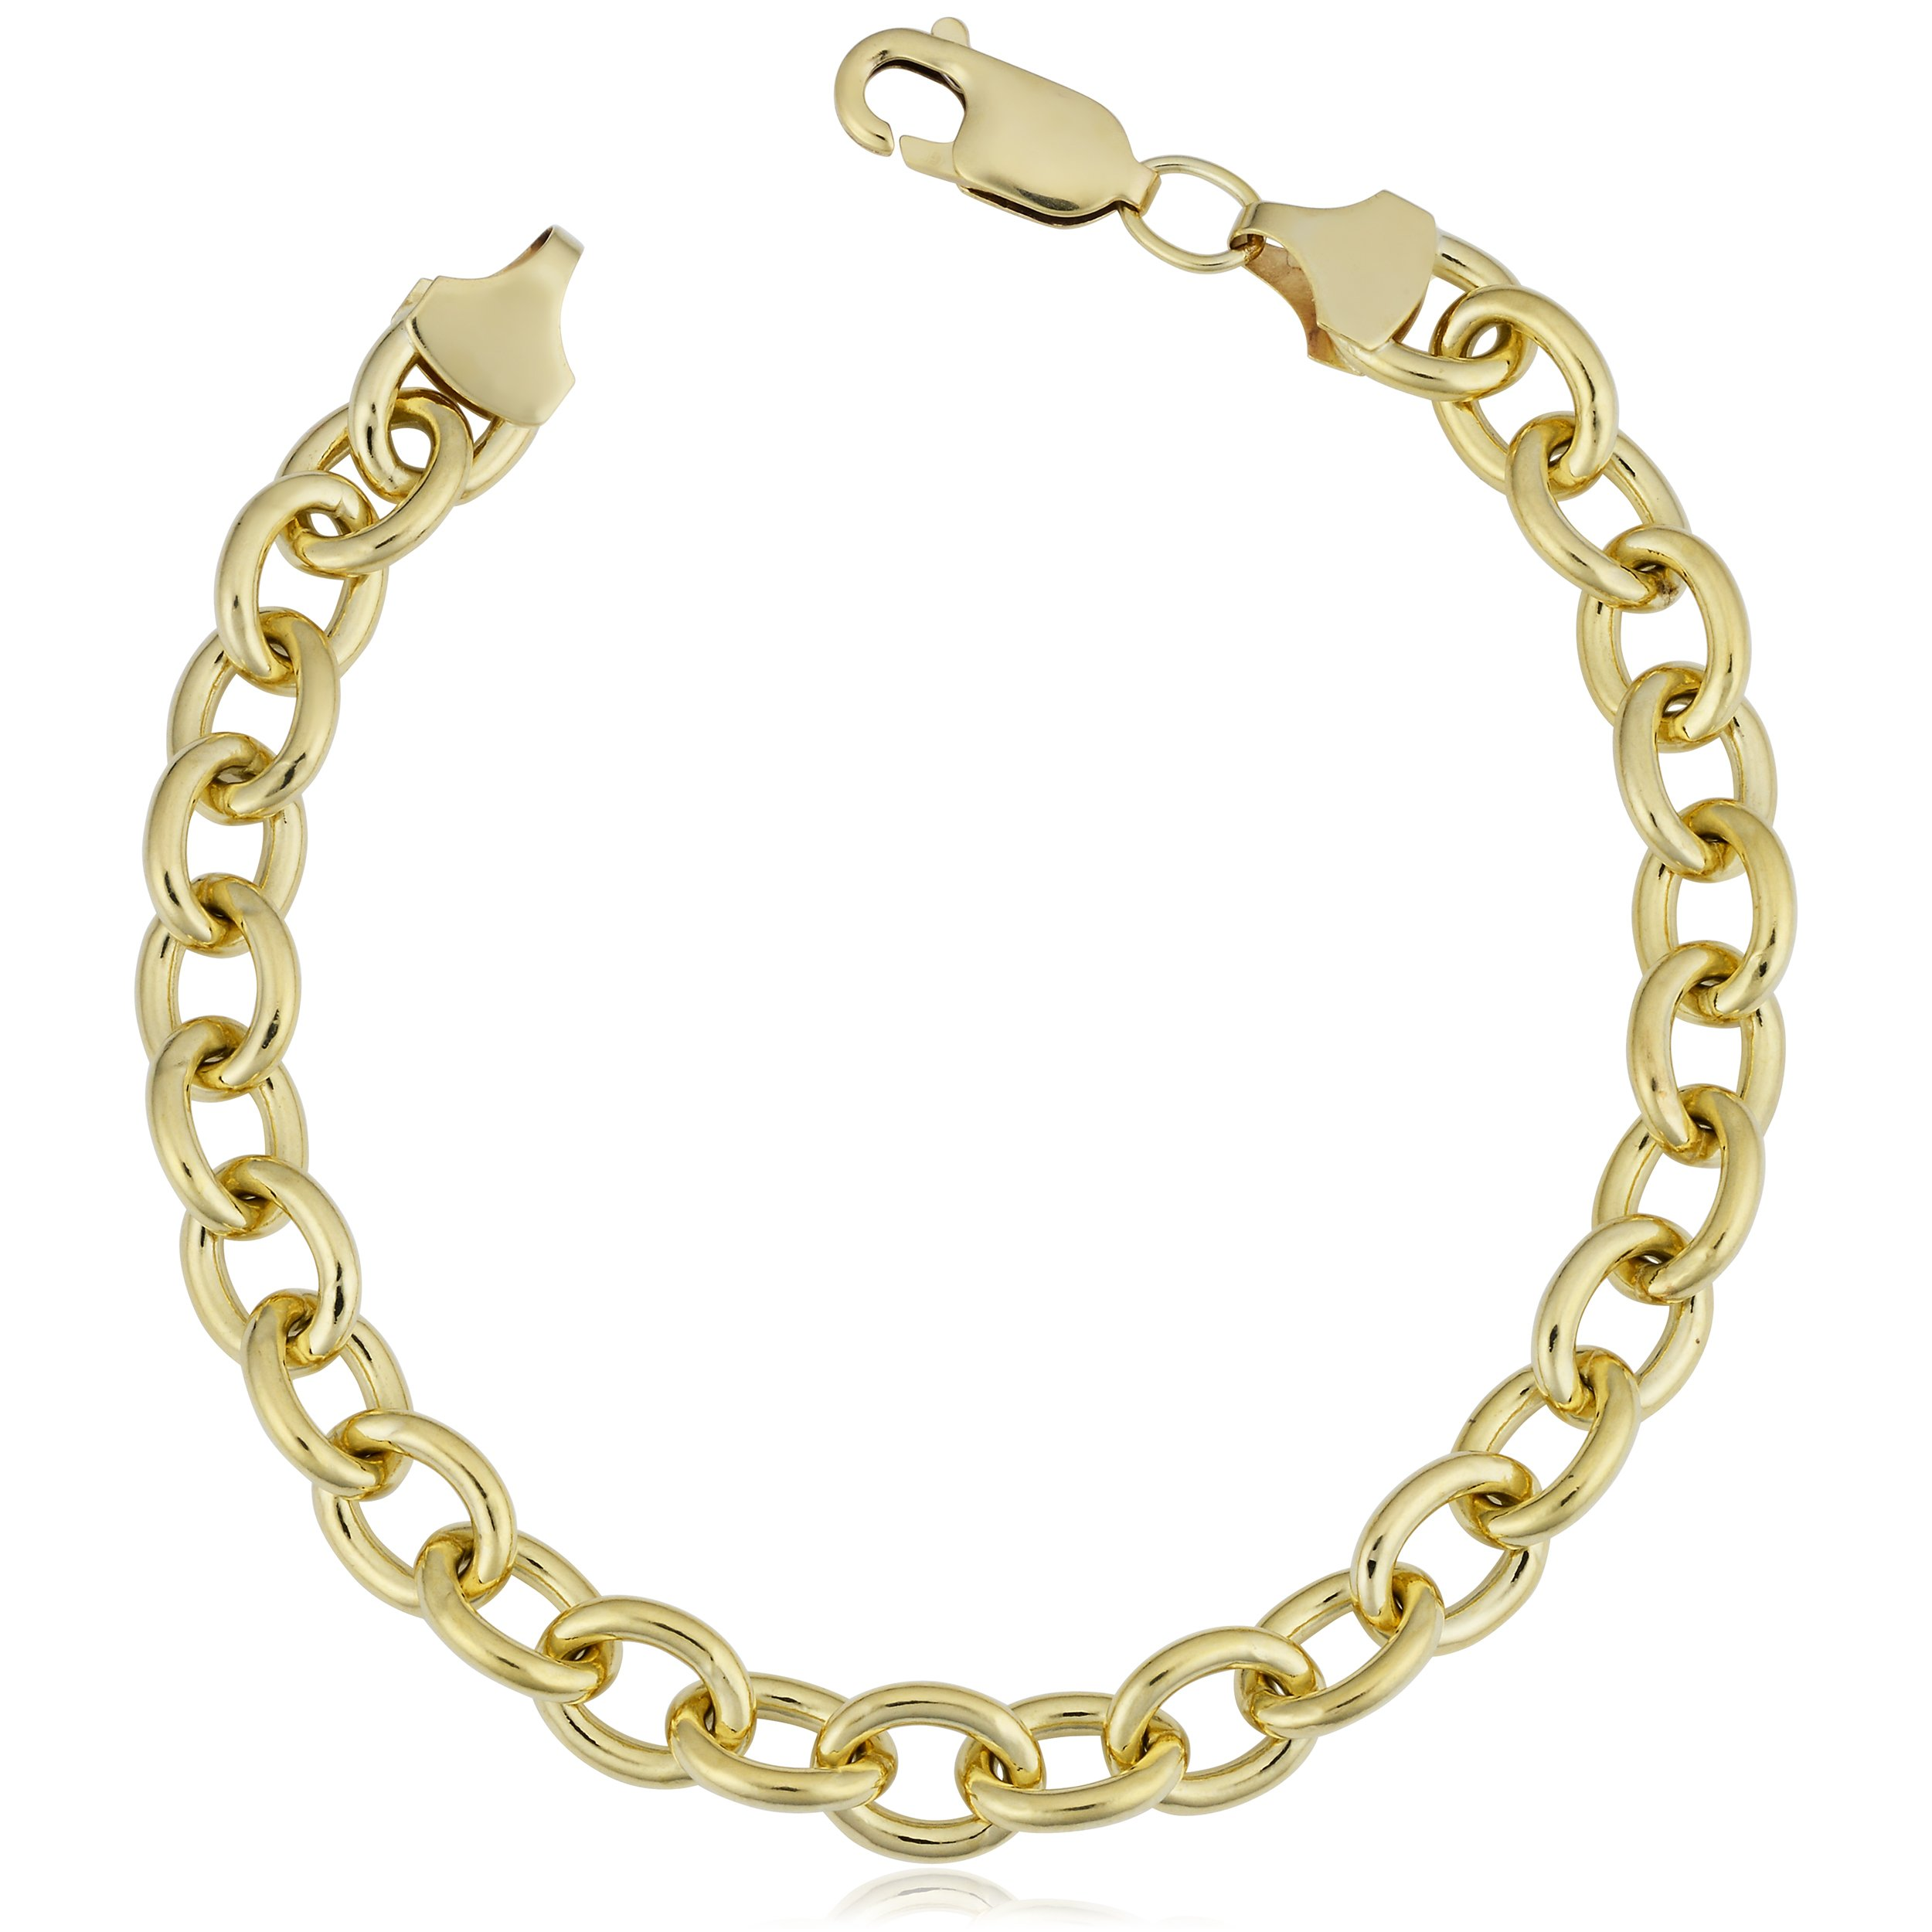 14k Yellow Gold Filled 7.5mm Unisex Bold Oval Link Chain Bracelet (8.5 inch)